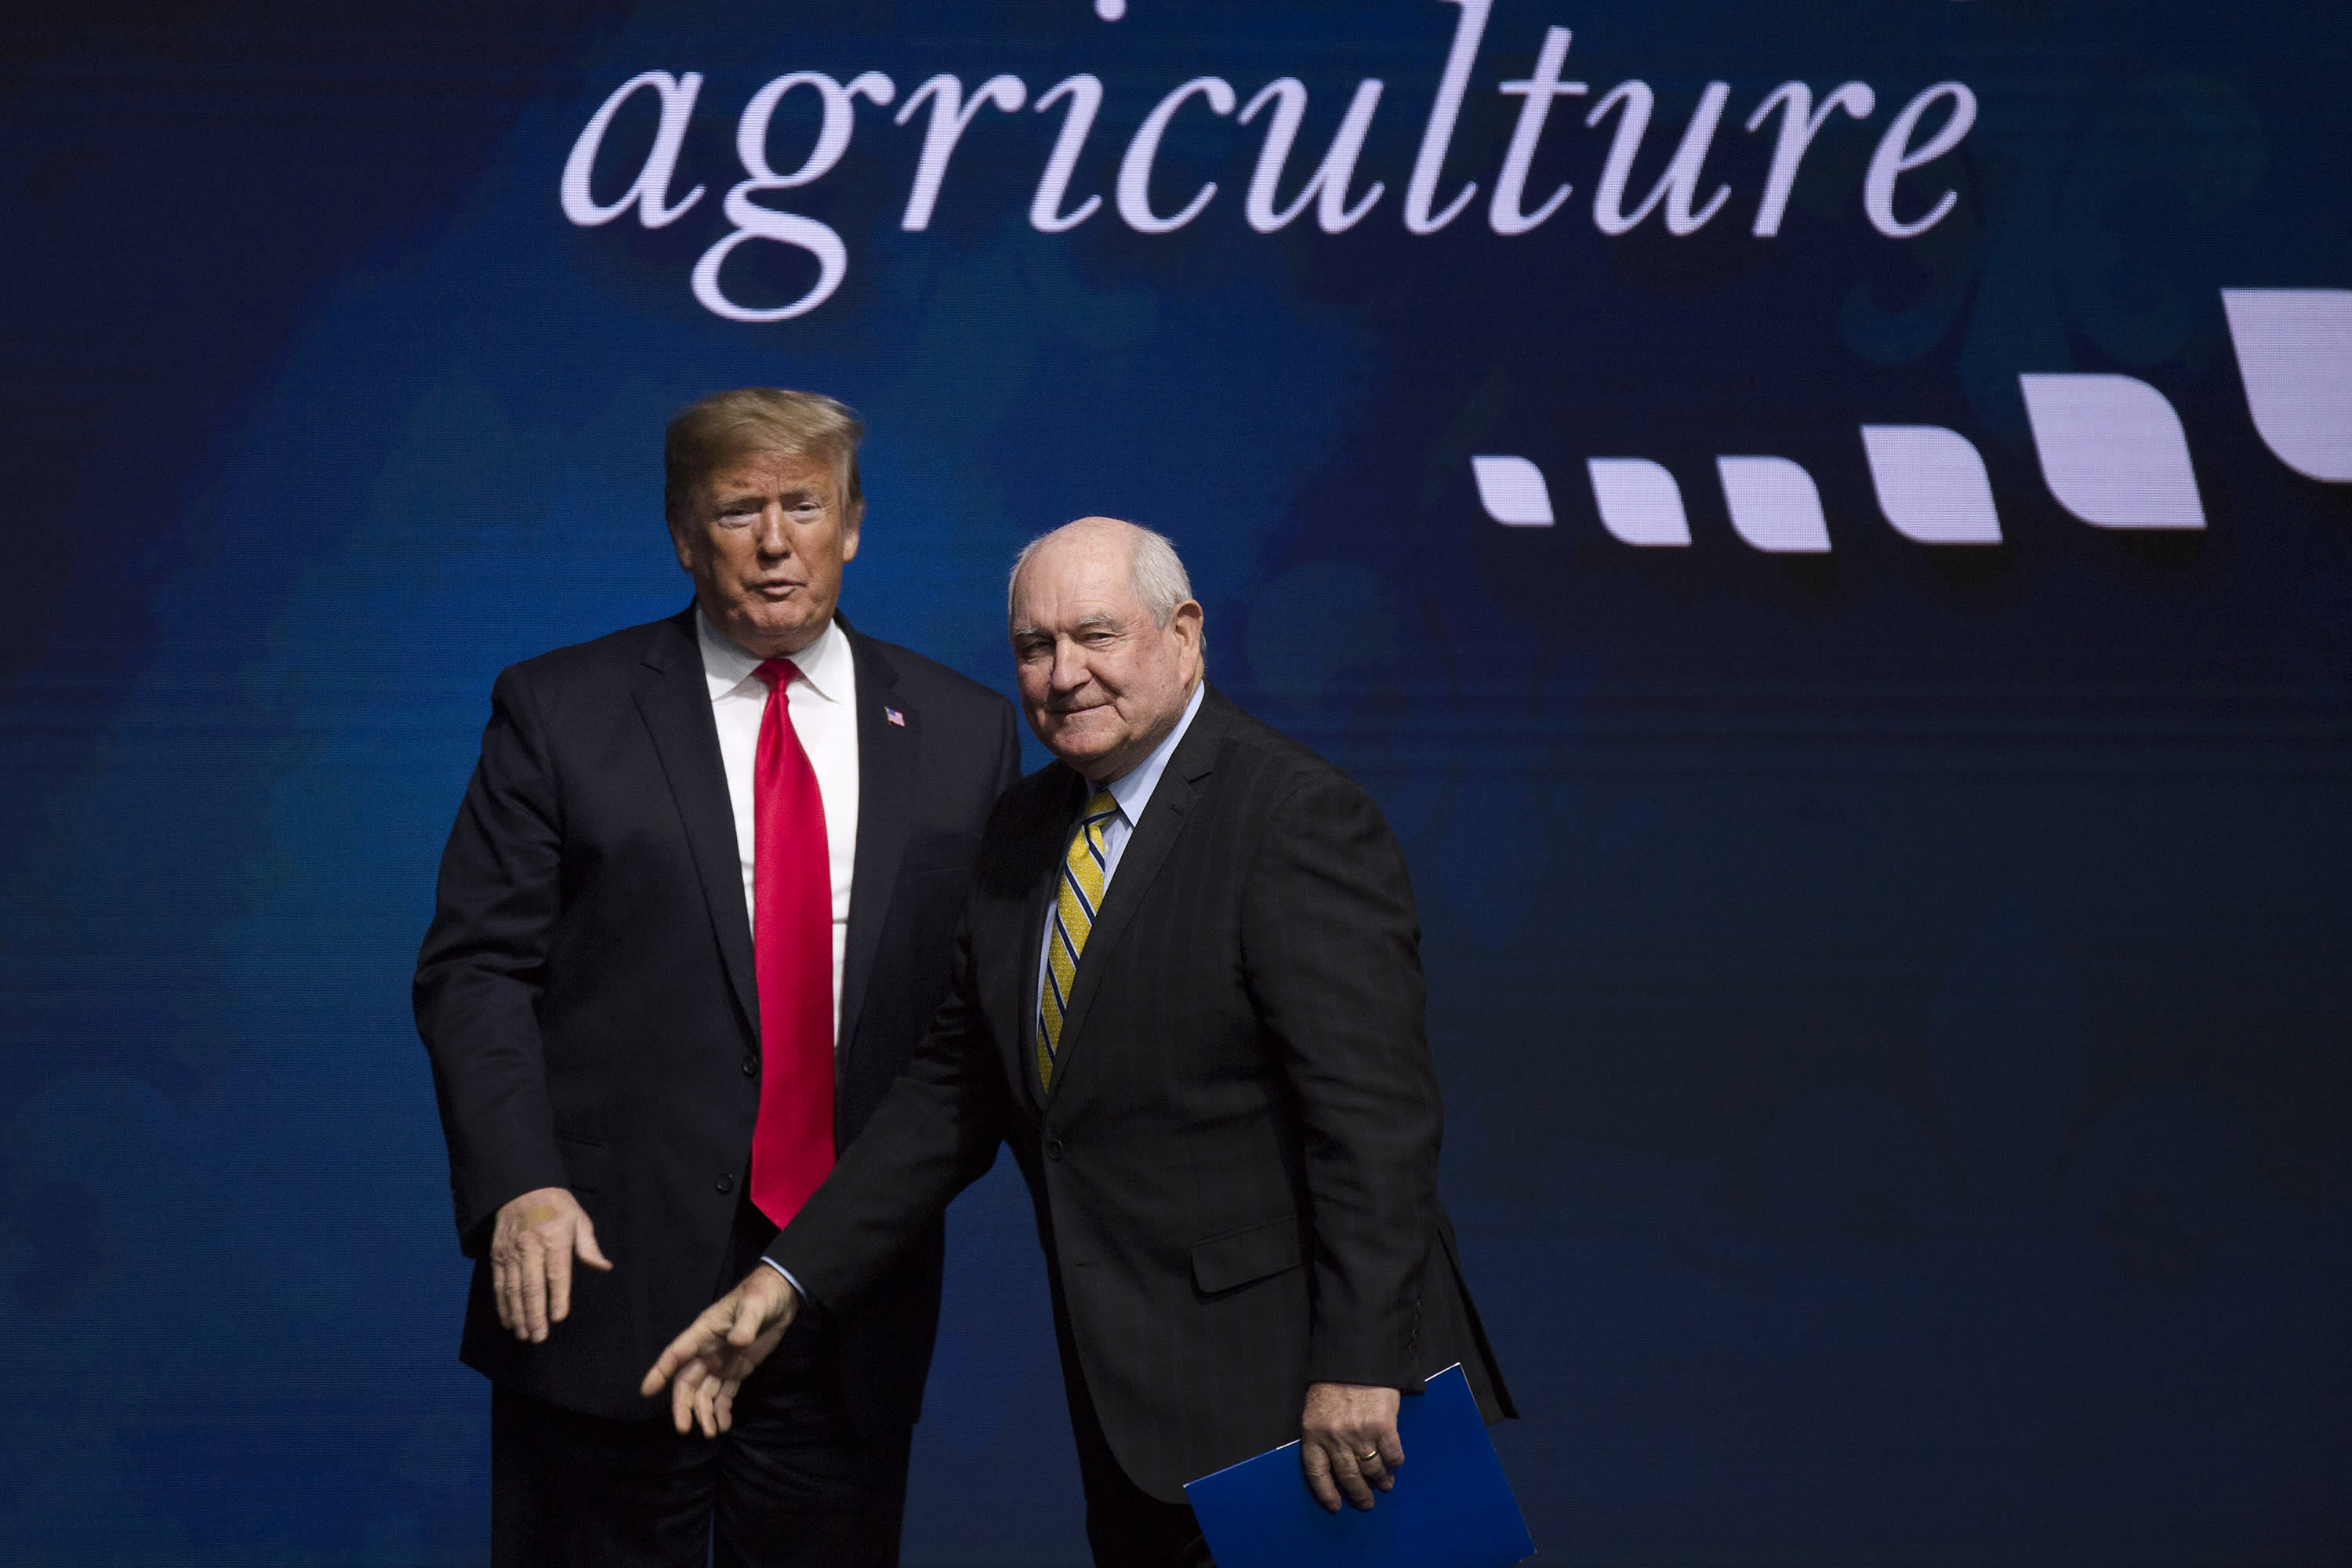 USDA's plan to relocate research agencies to the Midwest unleashes a brain drain